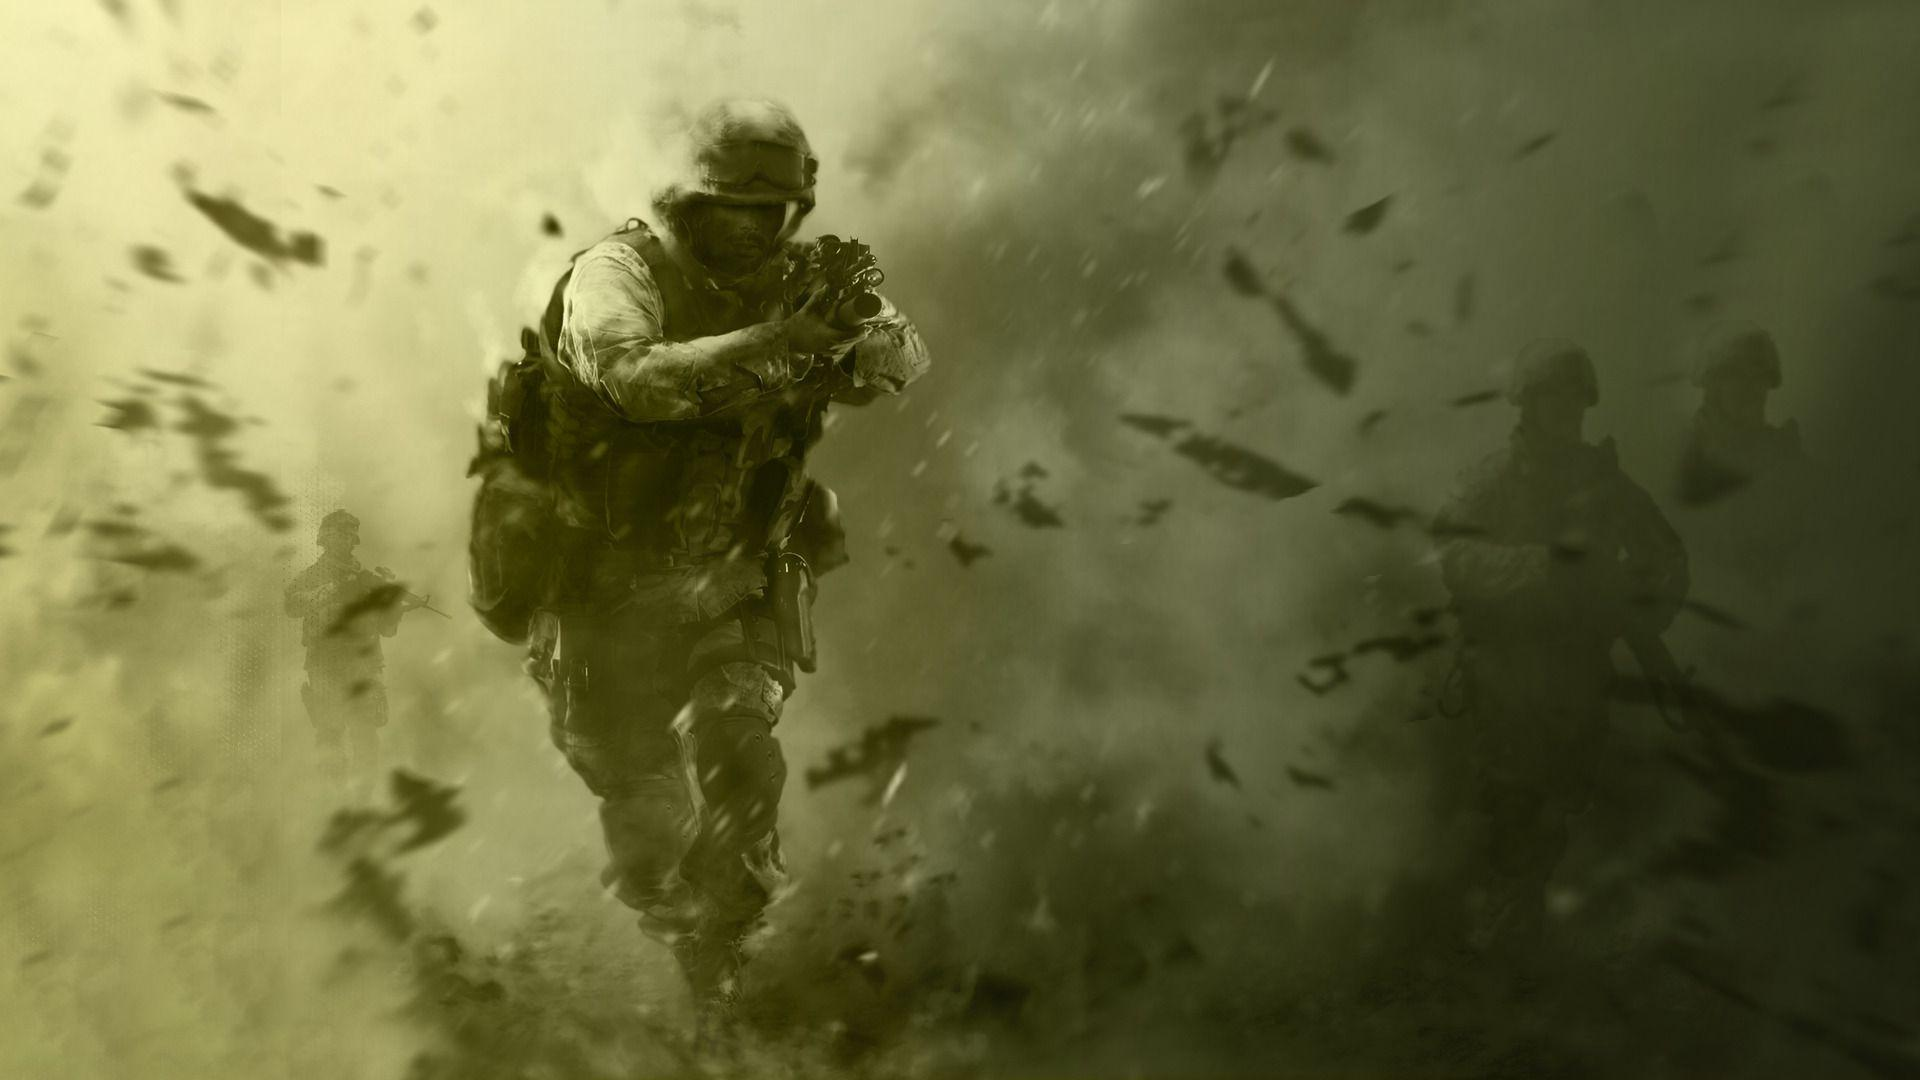 Call of duty 4 wallpapers wallpaper cave for Cool modern wallpapers